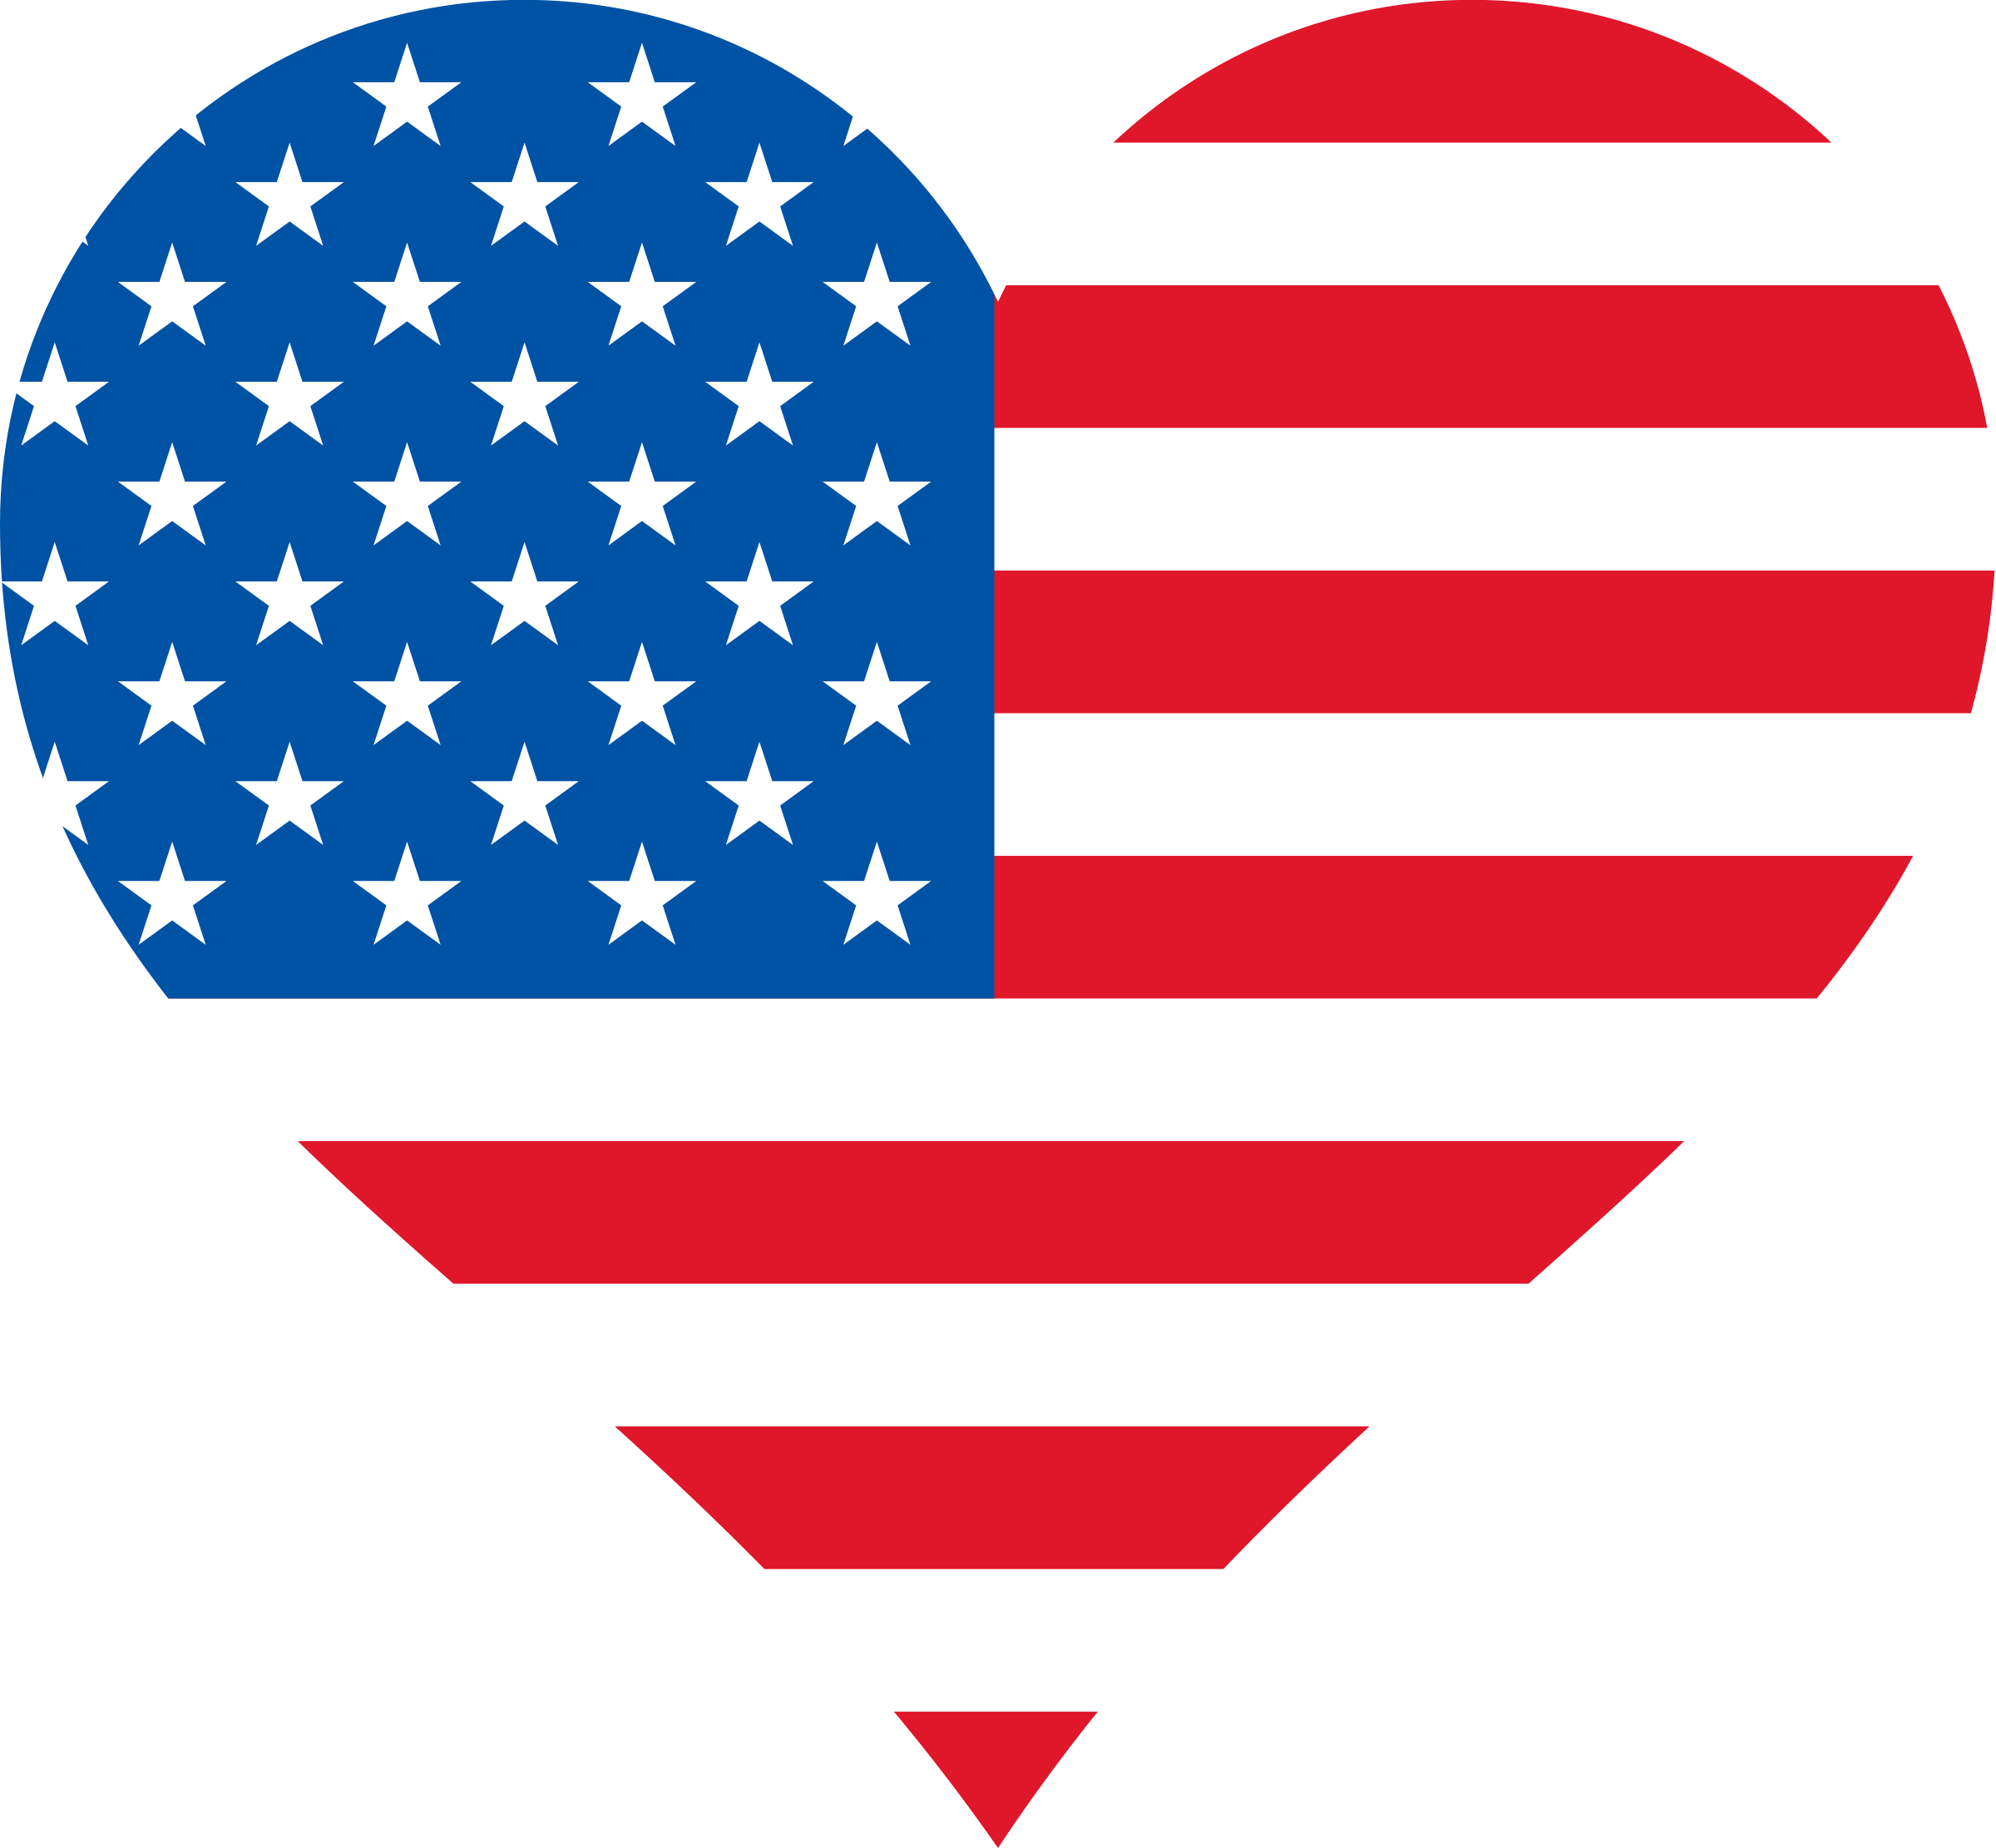 Flag of united states clipart vector transparent download Clipart - Stars and Stripes heart shaped, USA heart flag vector transparent download